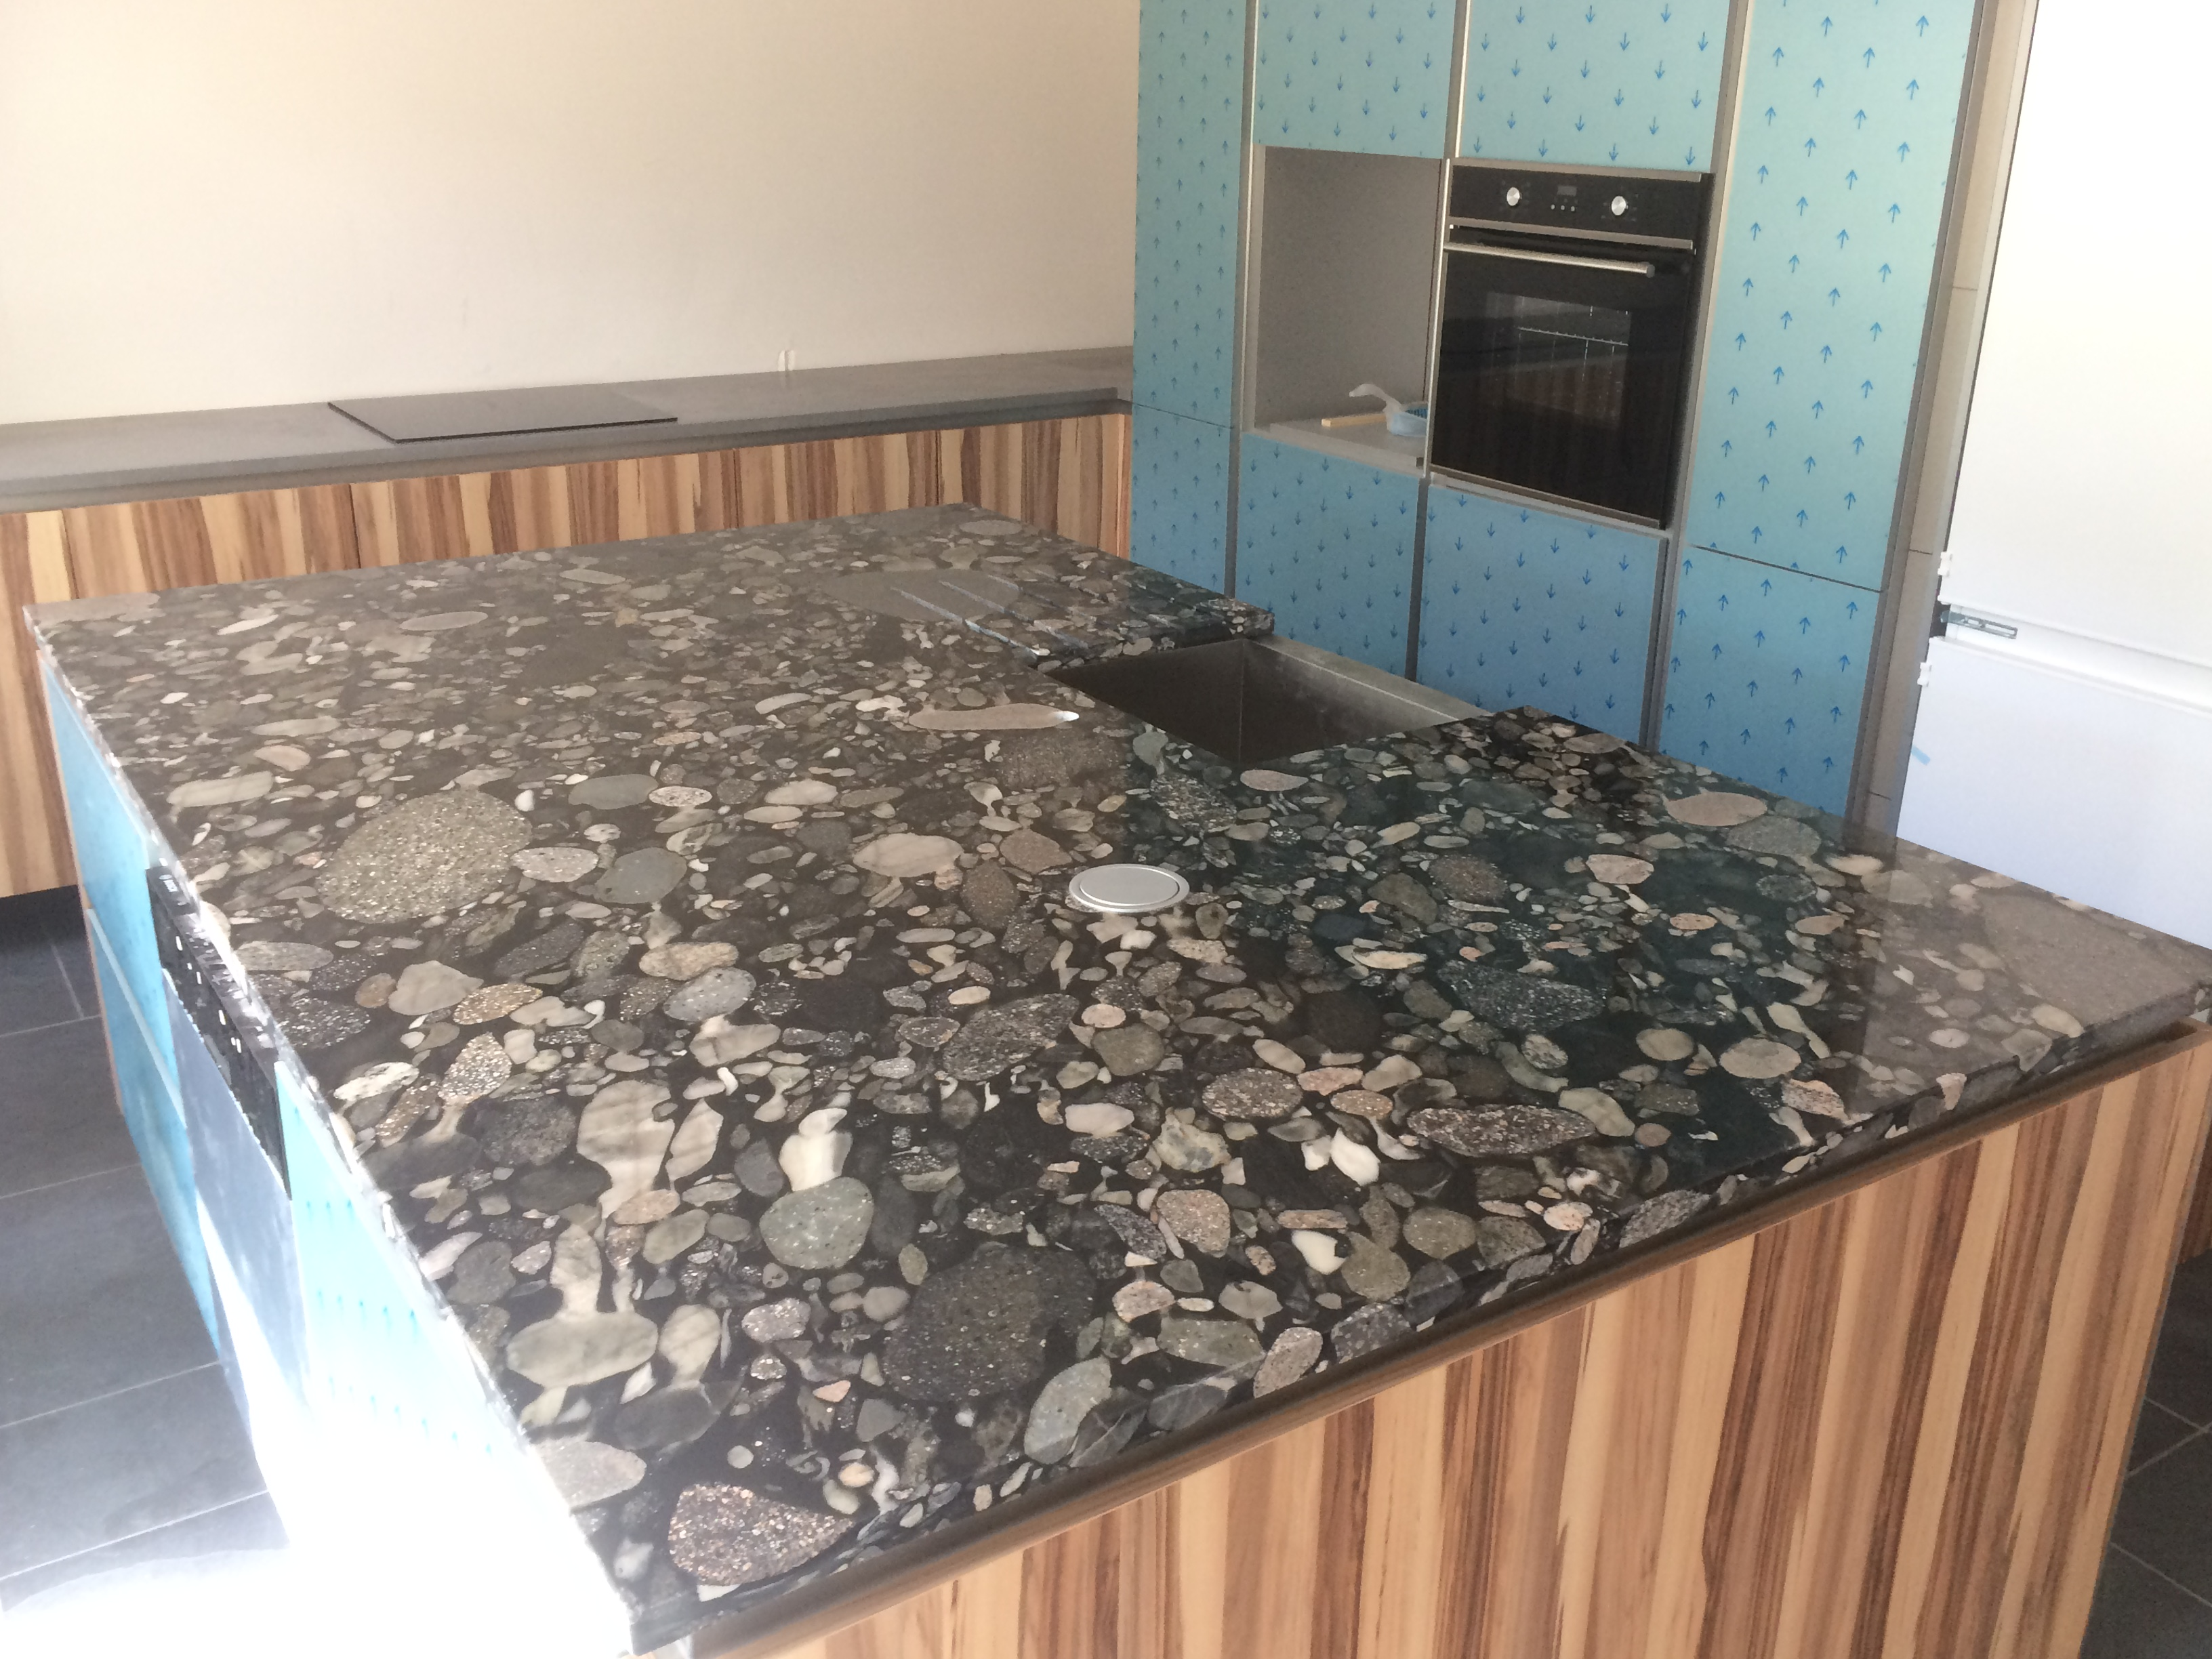 Roktops Granite worktop